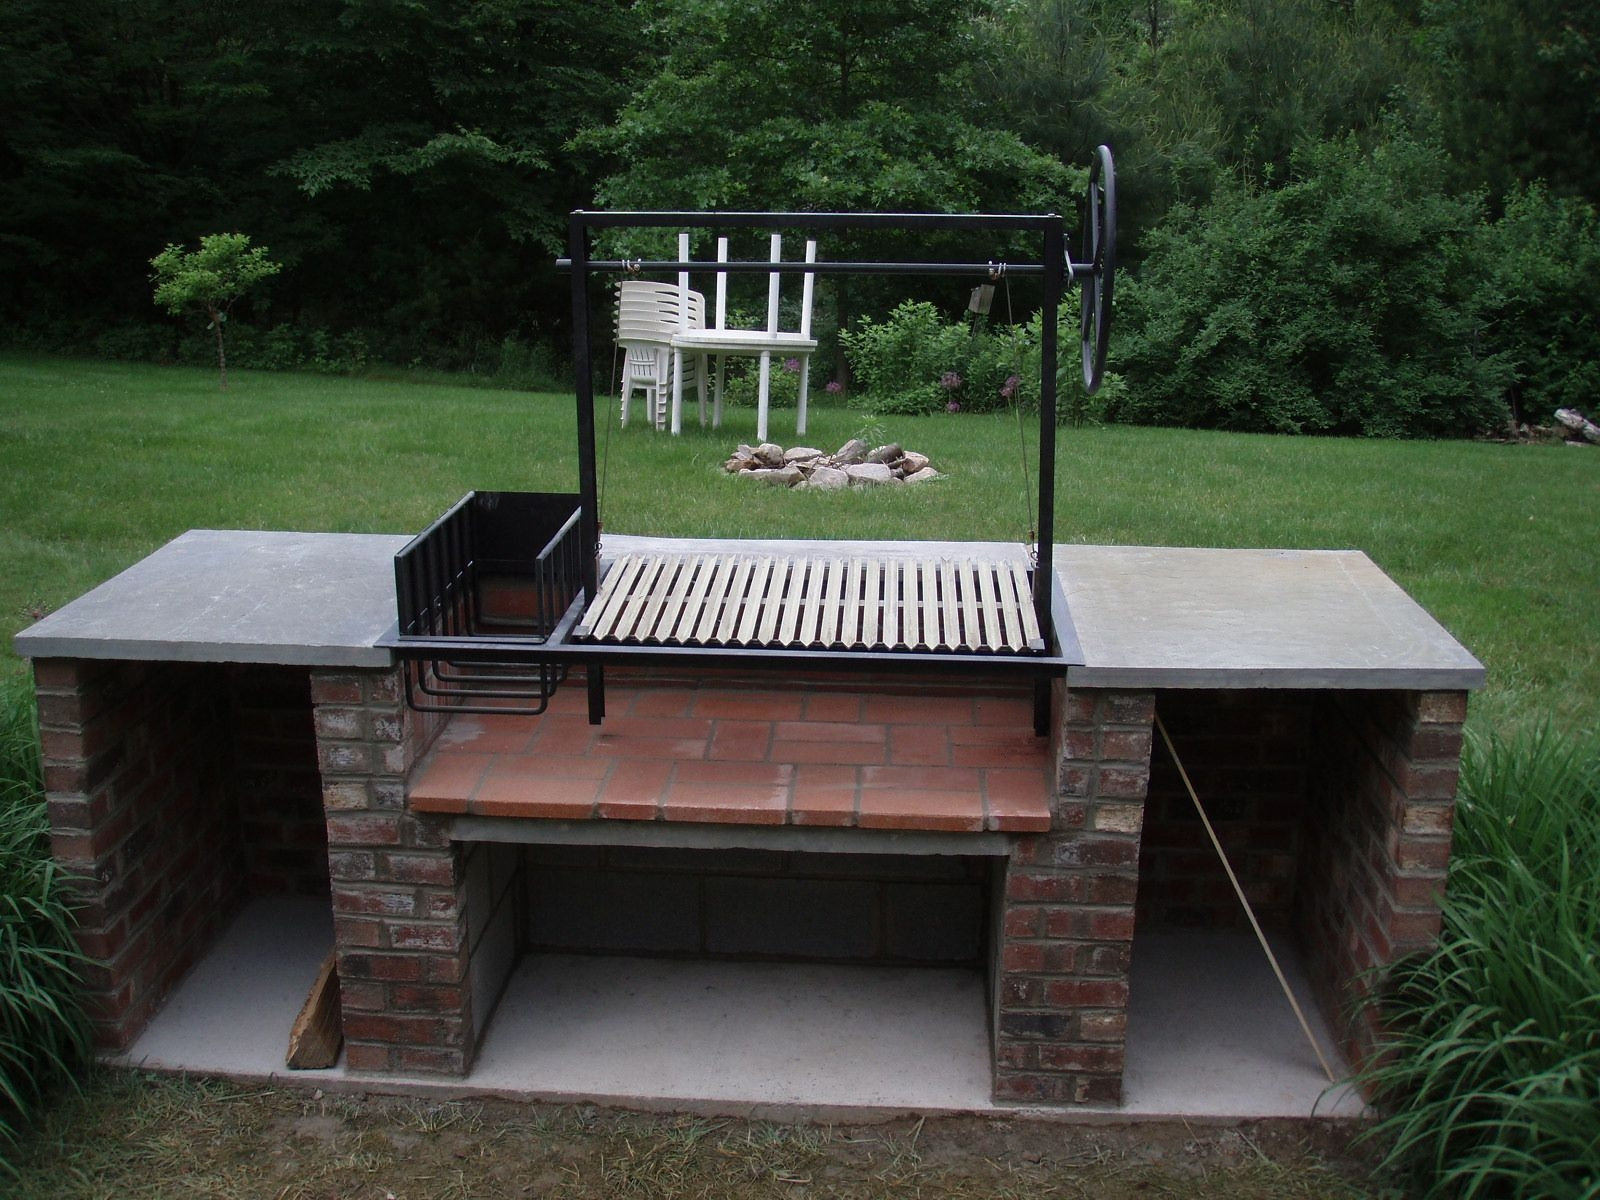 diy argentine grill plans home ideas outdoor cooking ...